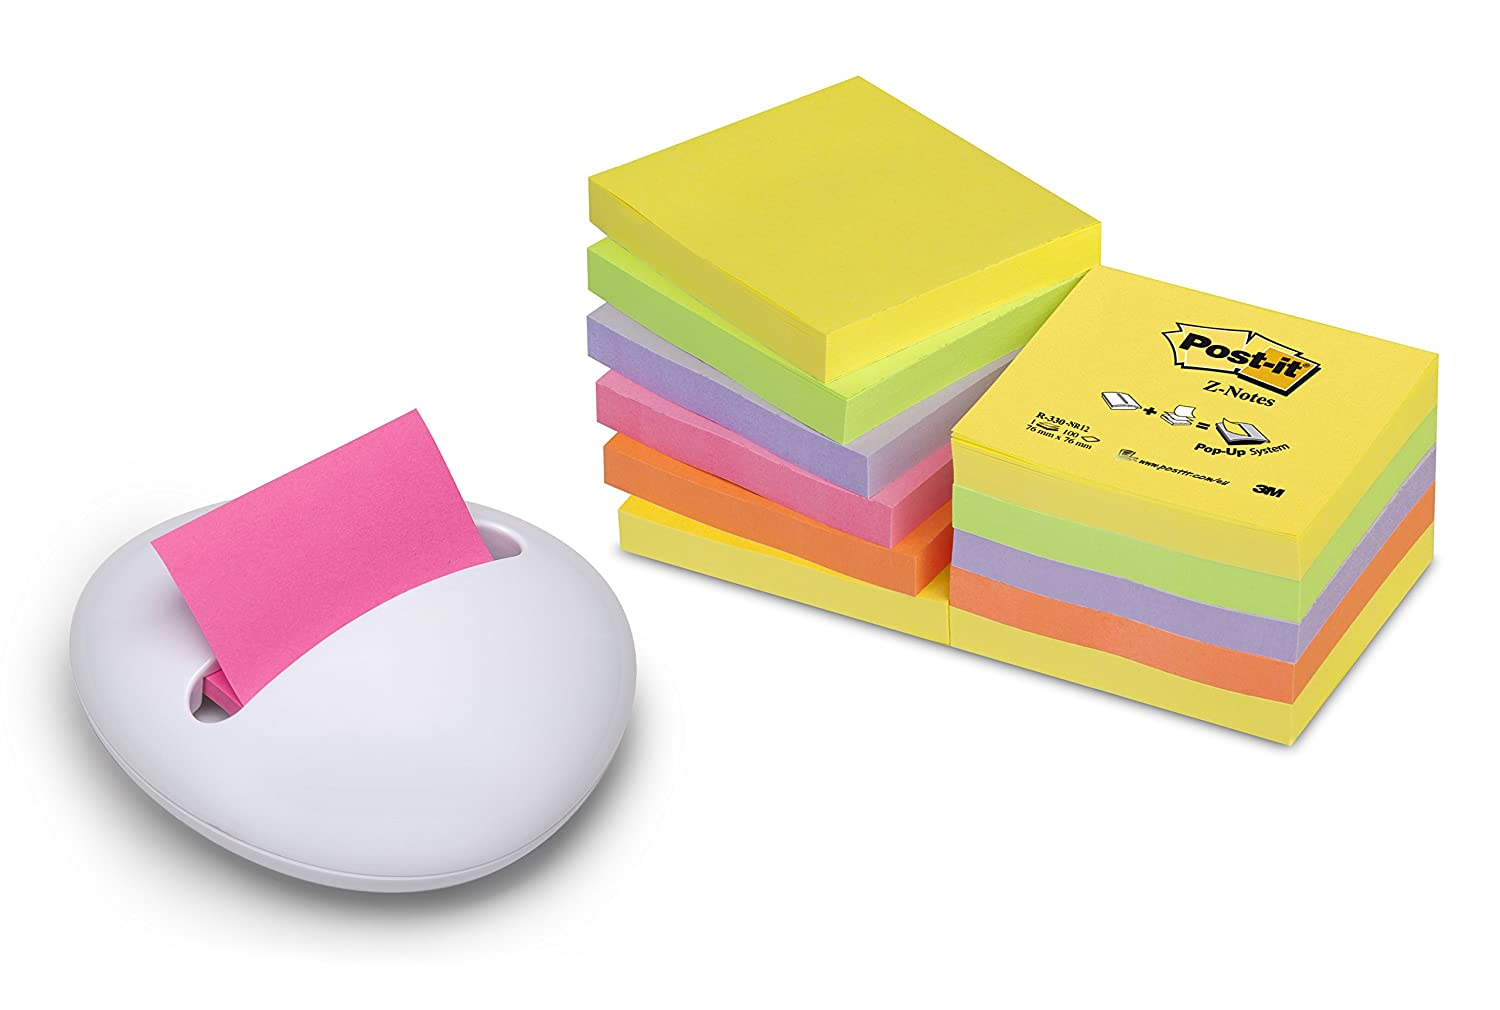 Post-it 74296 Dispenser da Tavolo Ricaricabile e 1 Post-it Blocchetto Fogli Adesivi, 76 x 76, Giallo Banana 3M B330-1RG